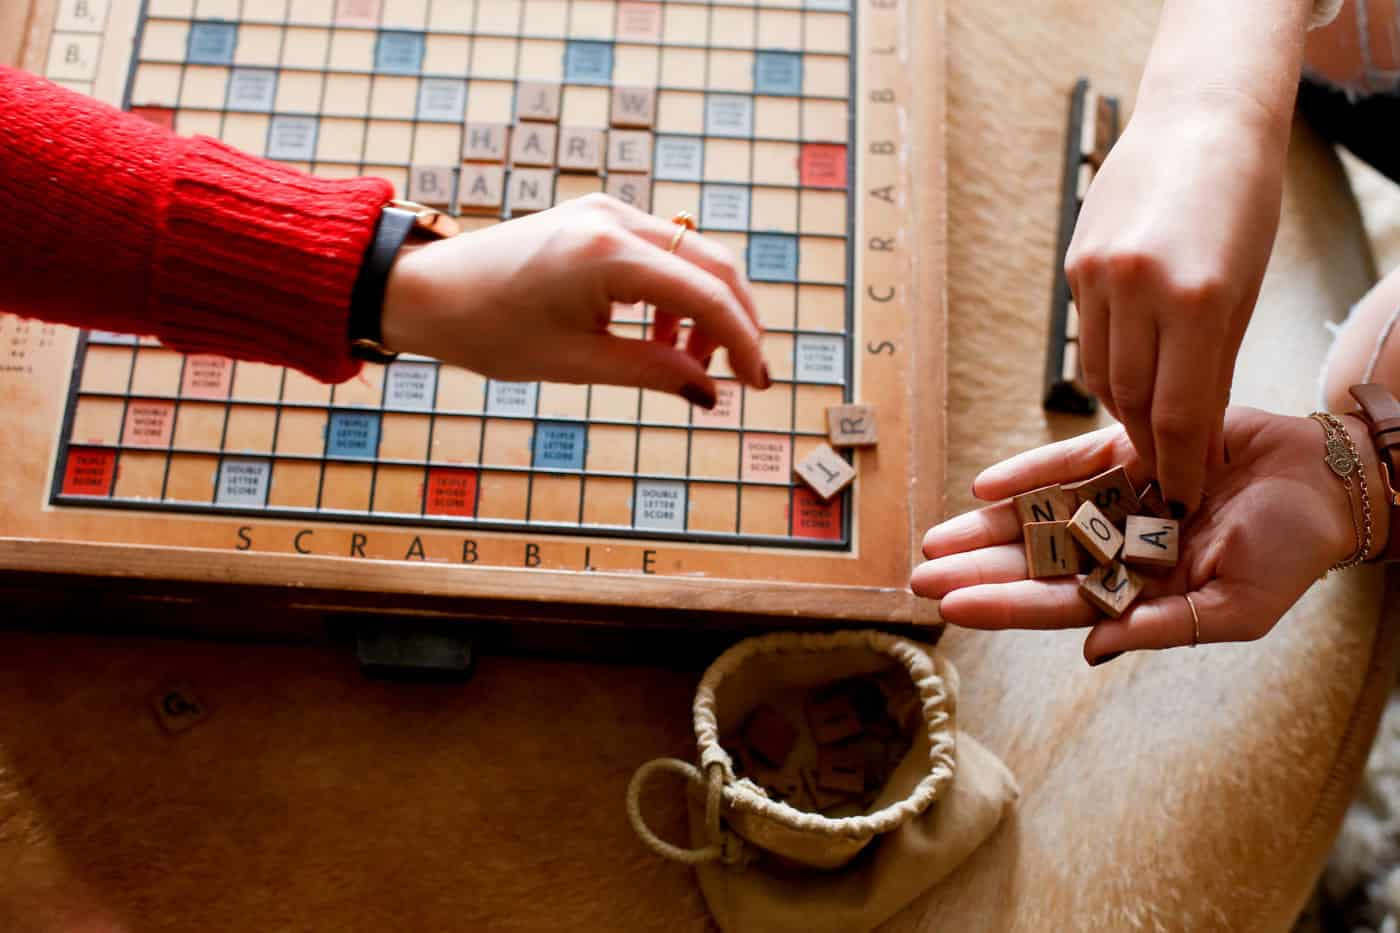 best adult board games to play, fun board games for groups, scrabble - My Style Vita @mystylevita